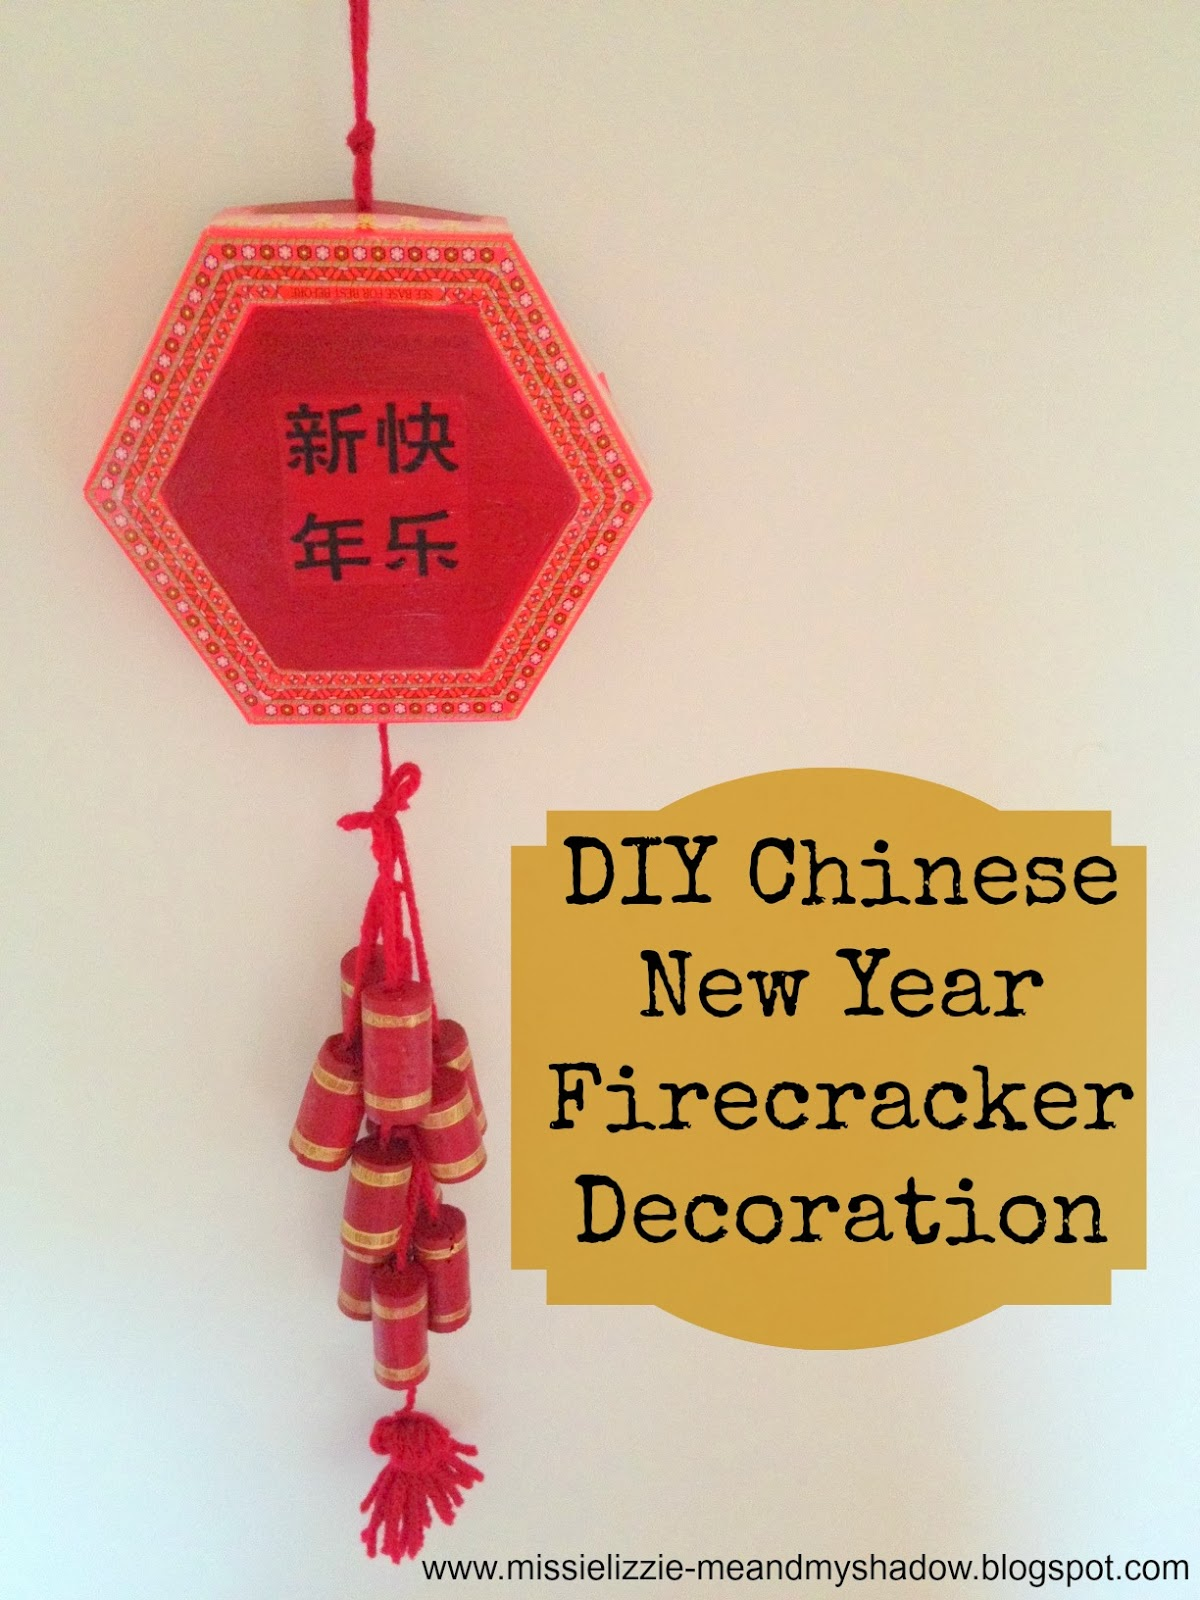 Homemade Chinese Firecracker decoration